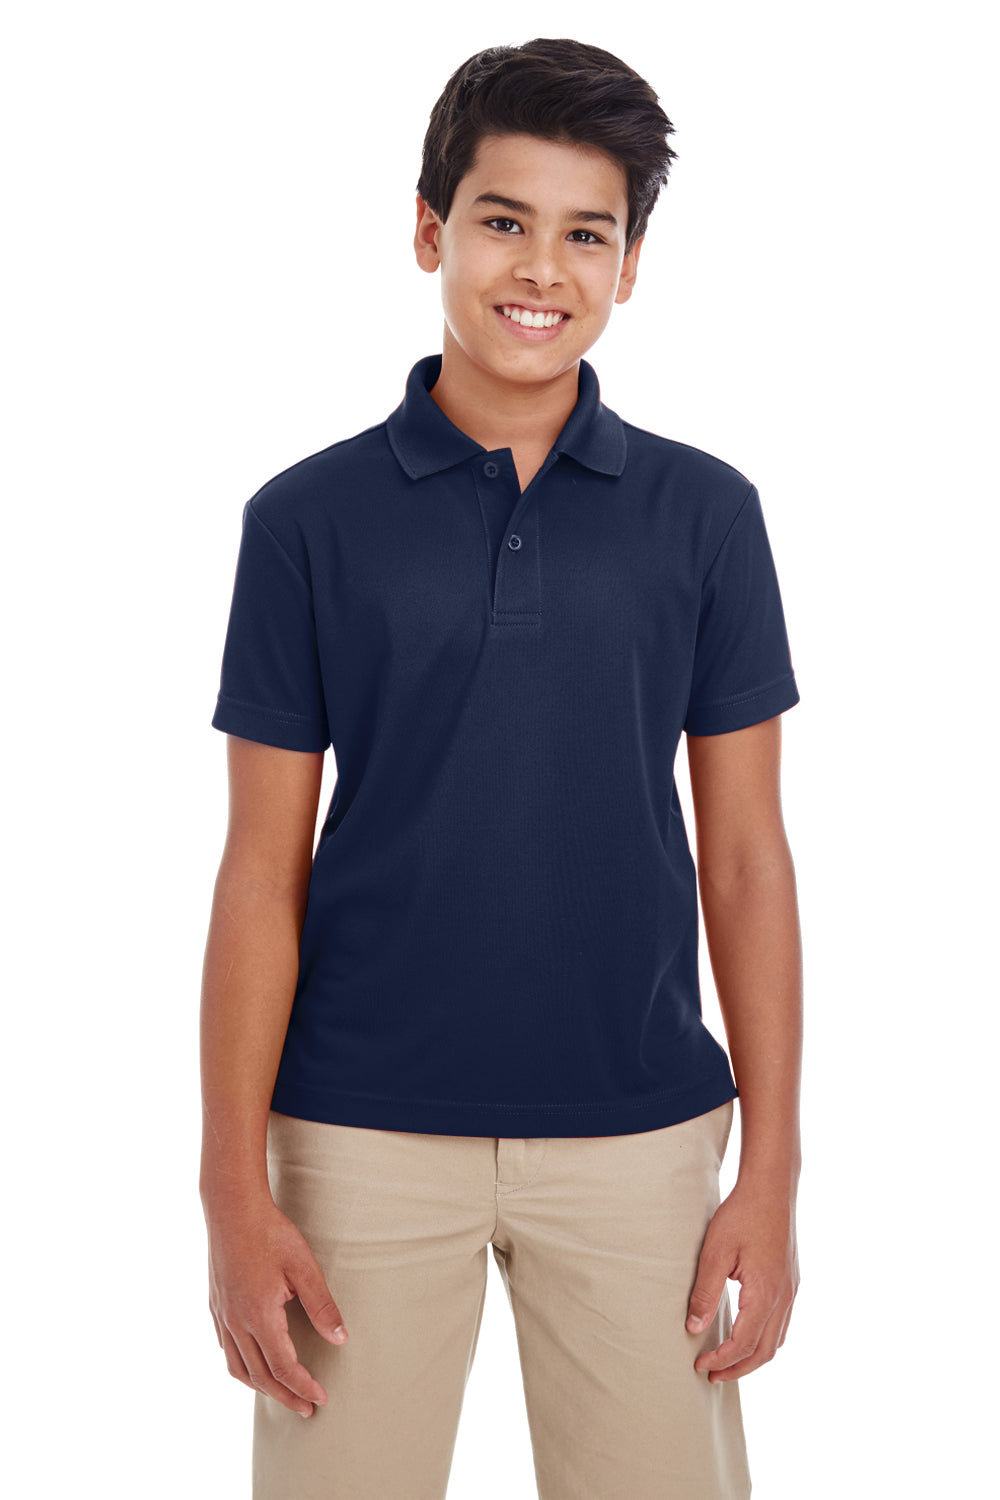 Core 365 88181Y Youth Origin Performance Moisture Wicking Short Sleeve Polo Shirt Navy Blue Front